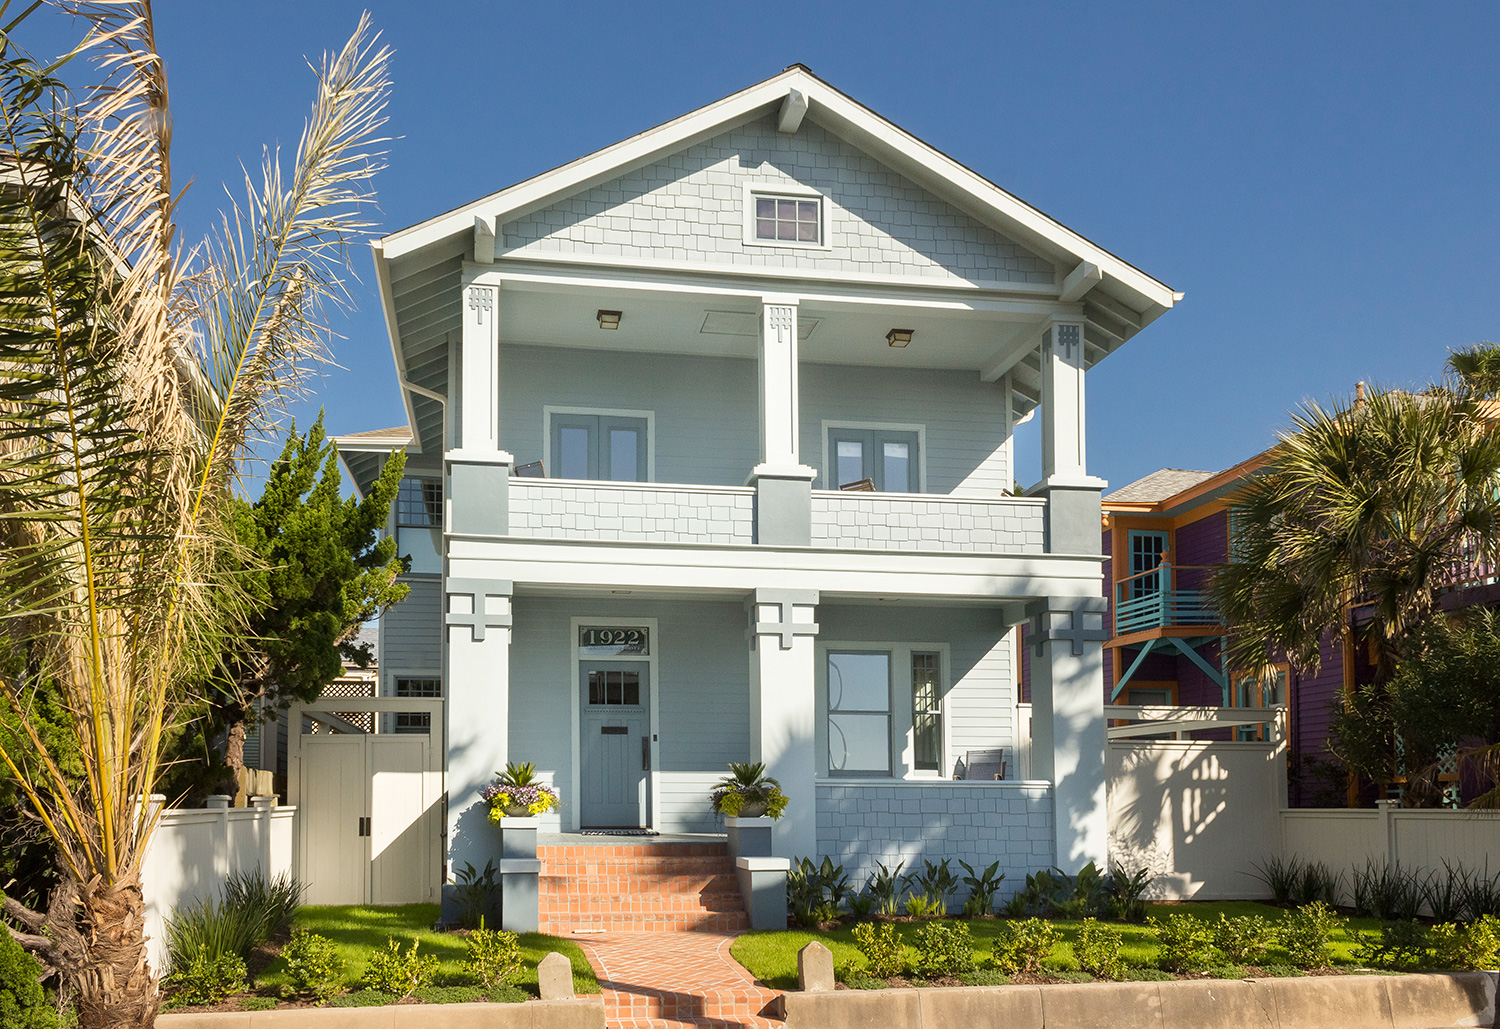 Galveston Historic Homes Tour Tickets Galveston